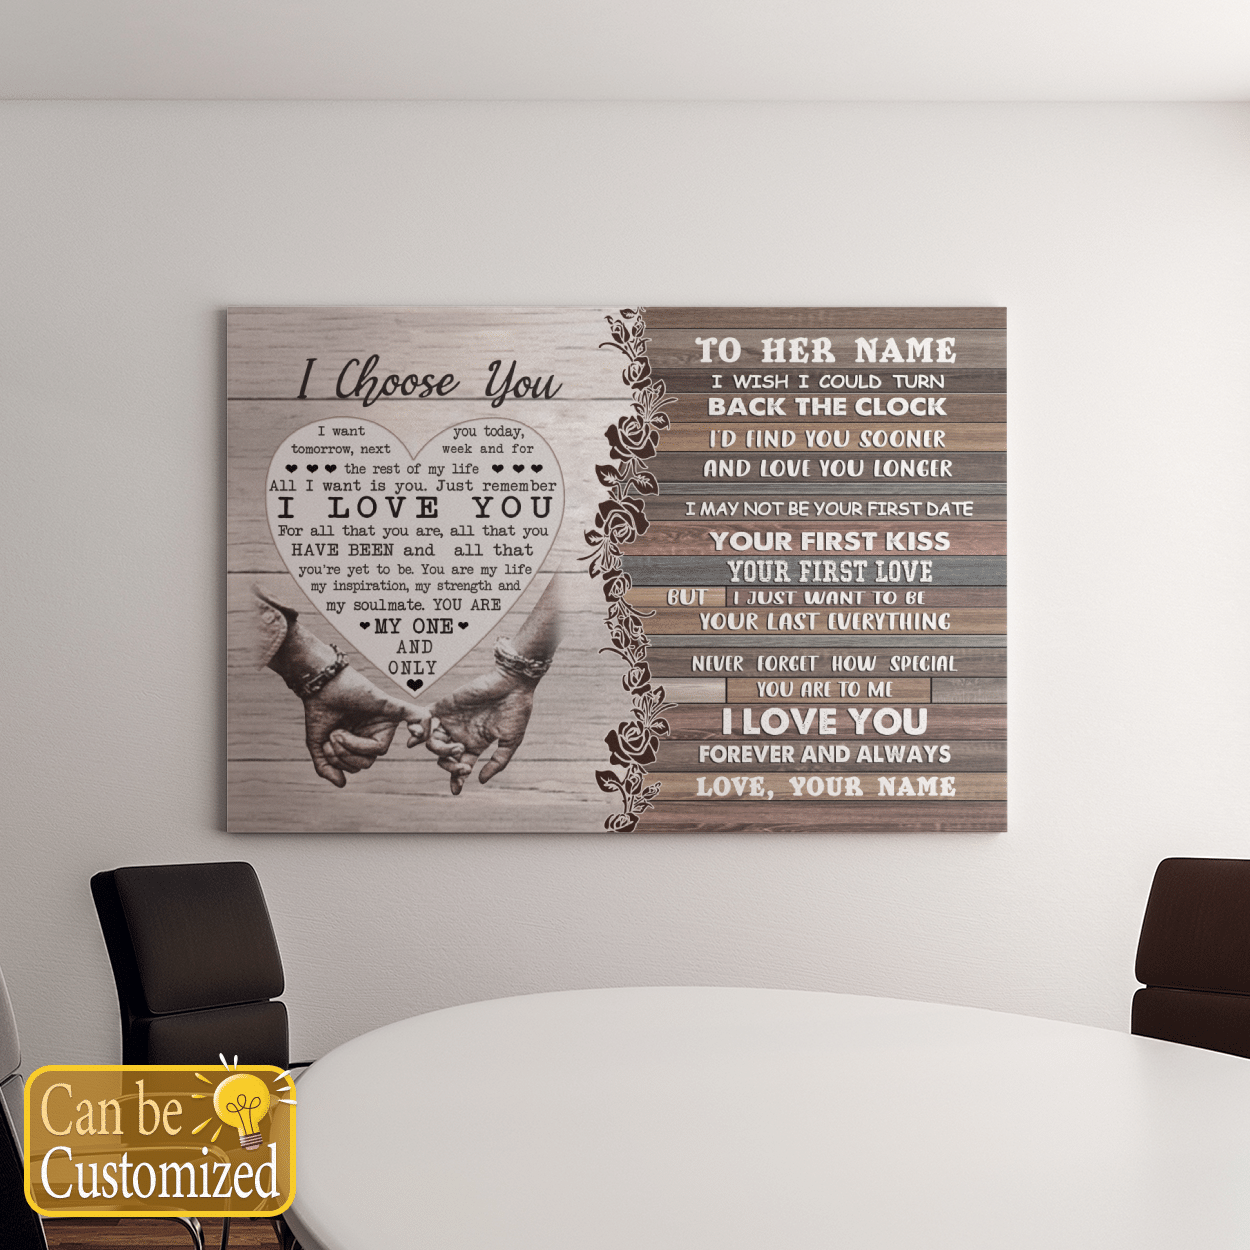 I CHOOSE YOU GREAT GIFT FOR WIFE BACK THE CLOCK POSTER